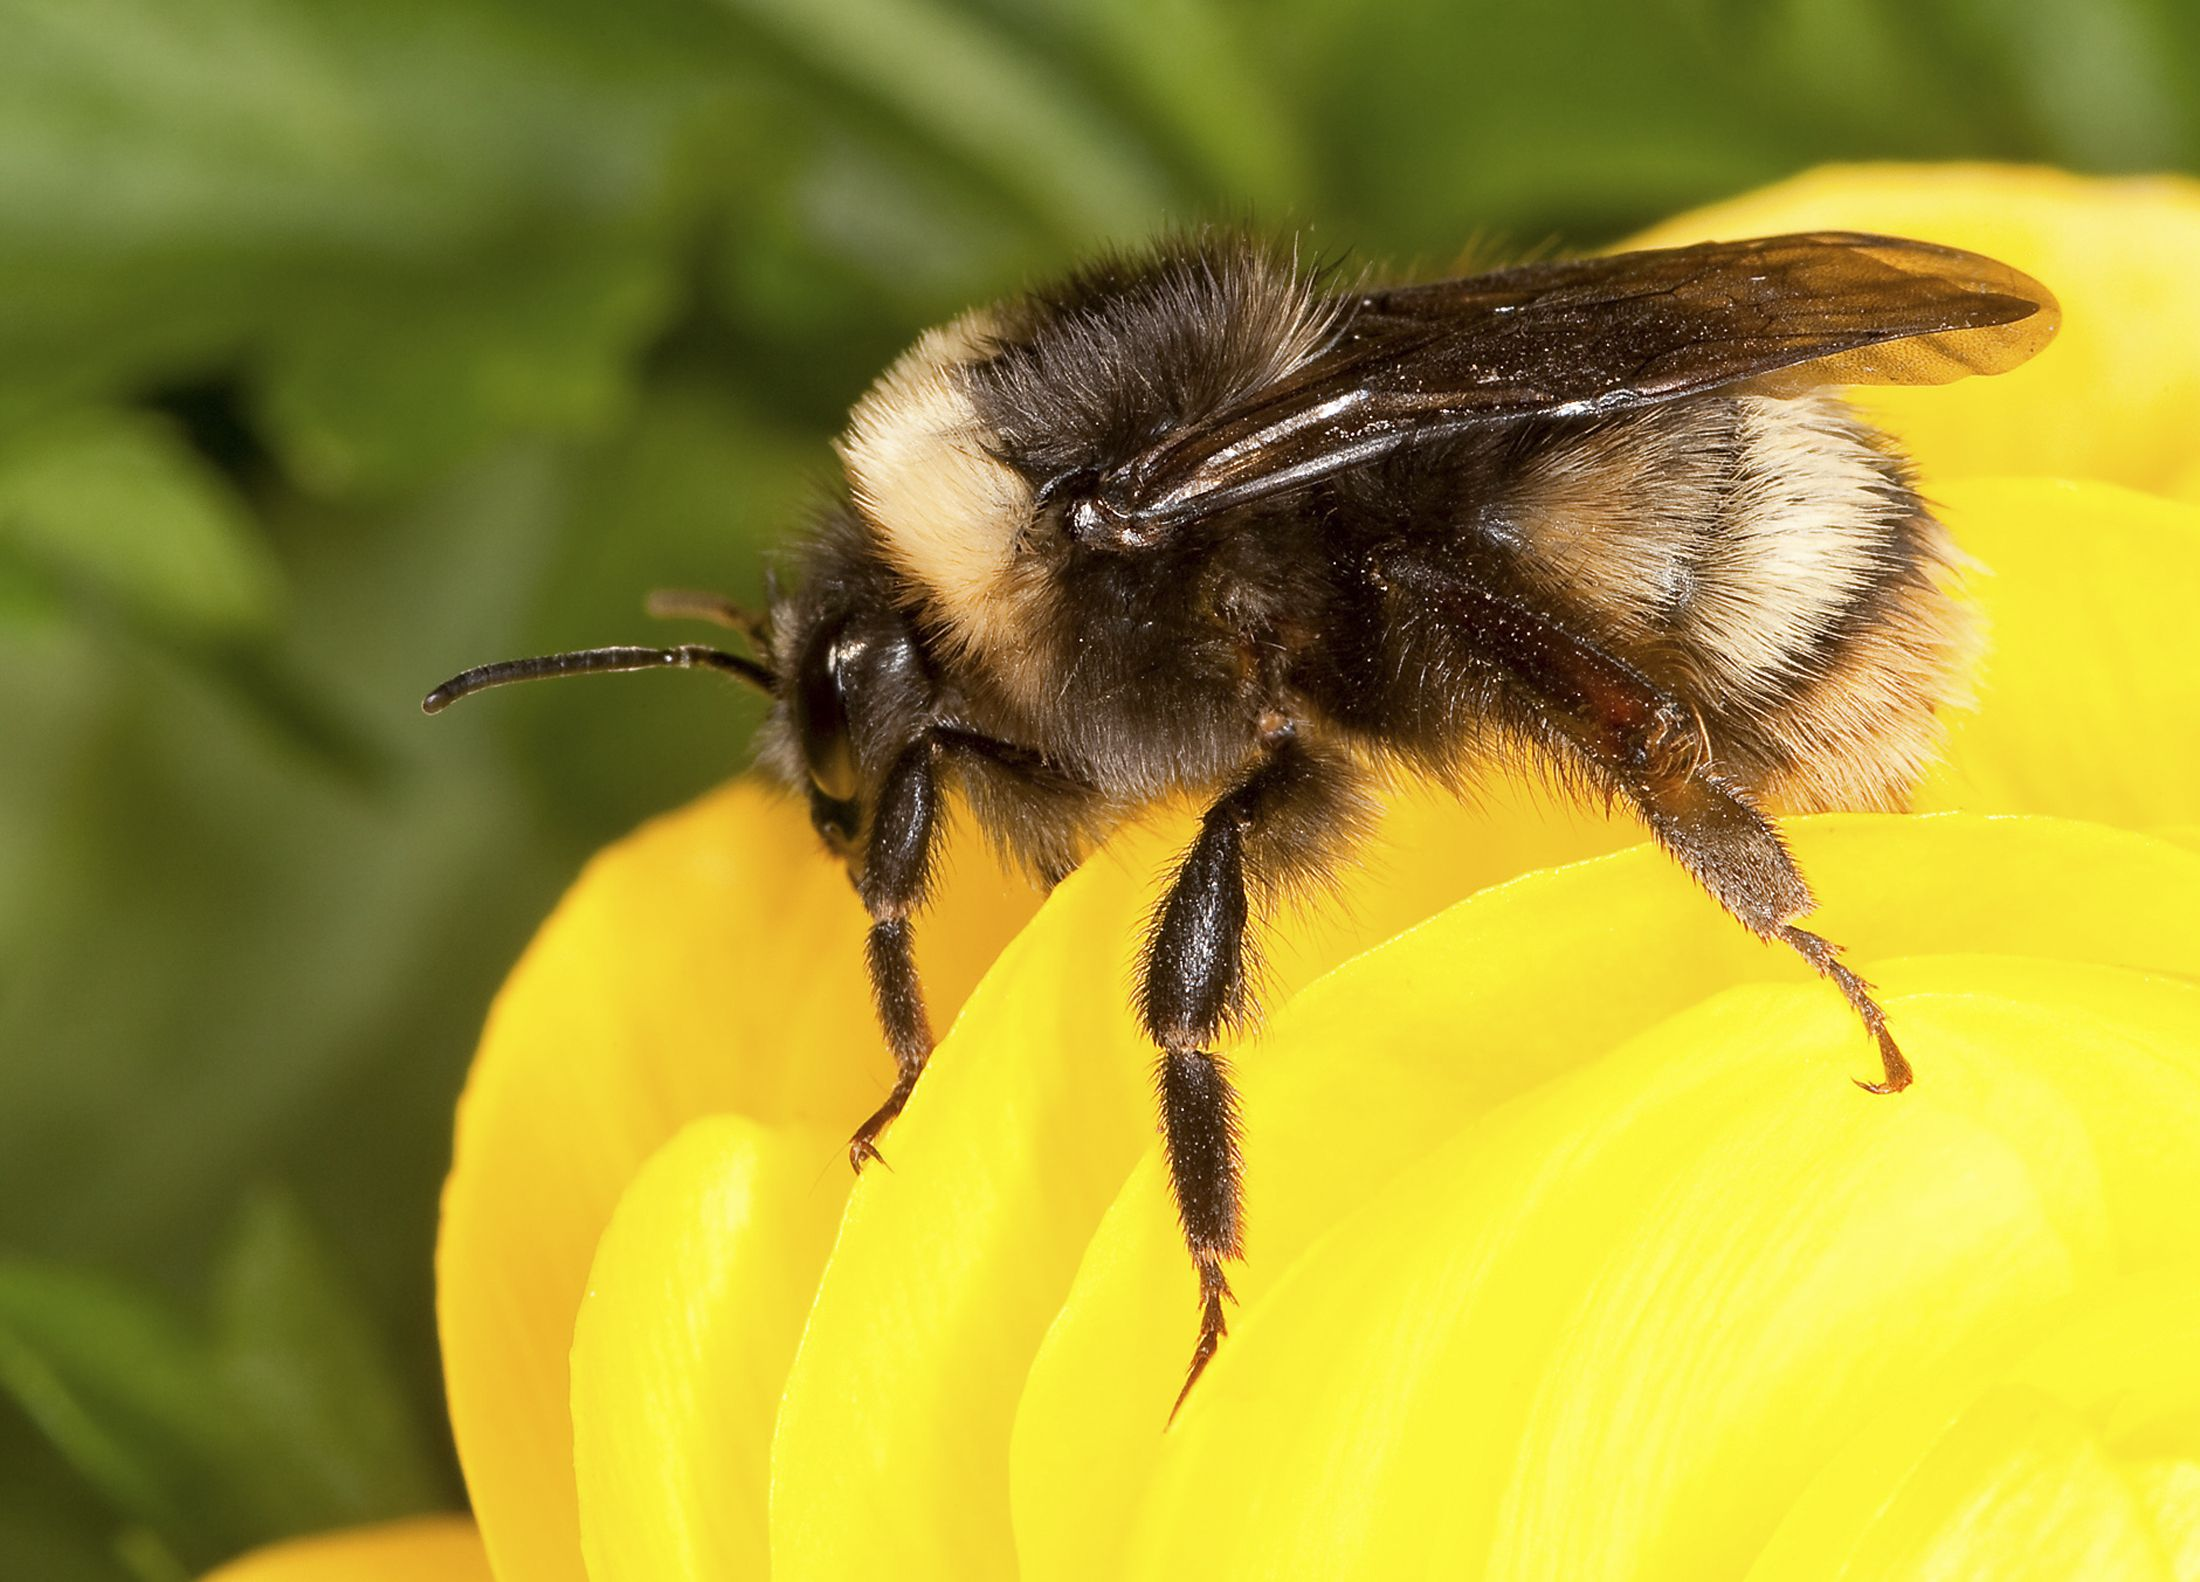 Bumblebees Can Sense Electric Fields Using Hairs